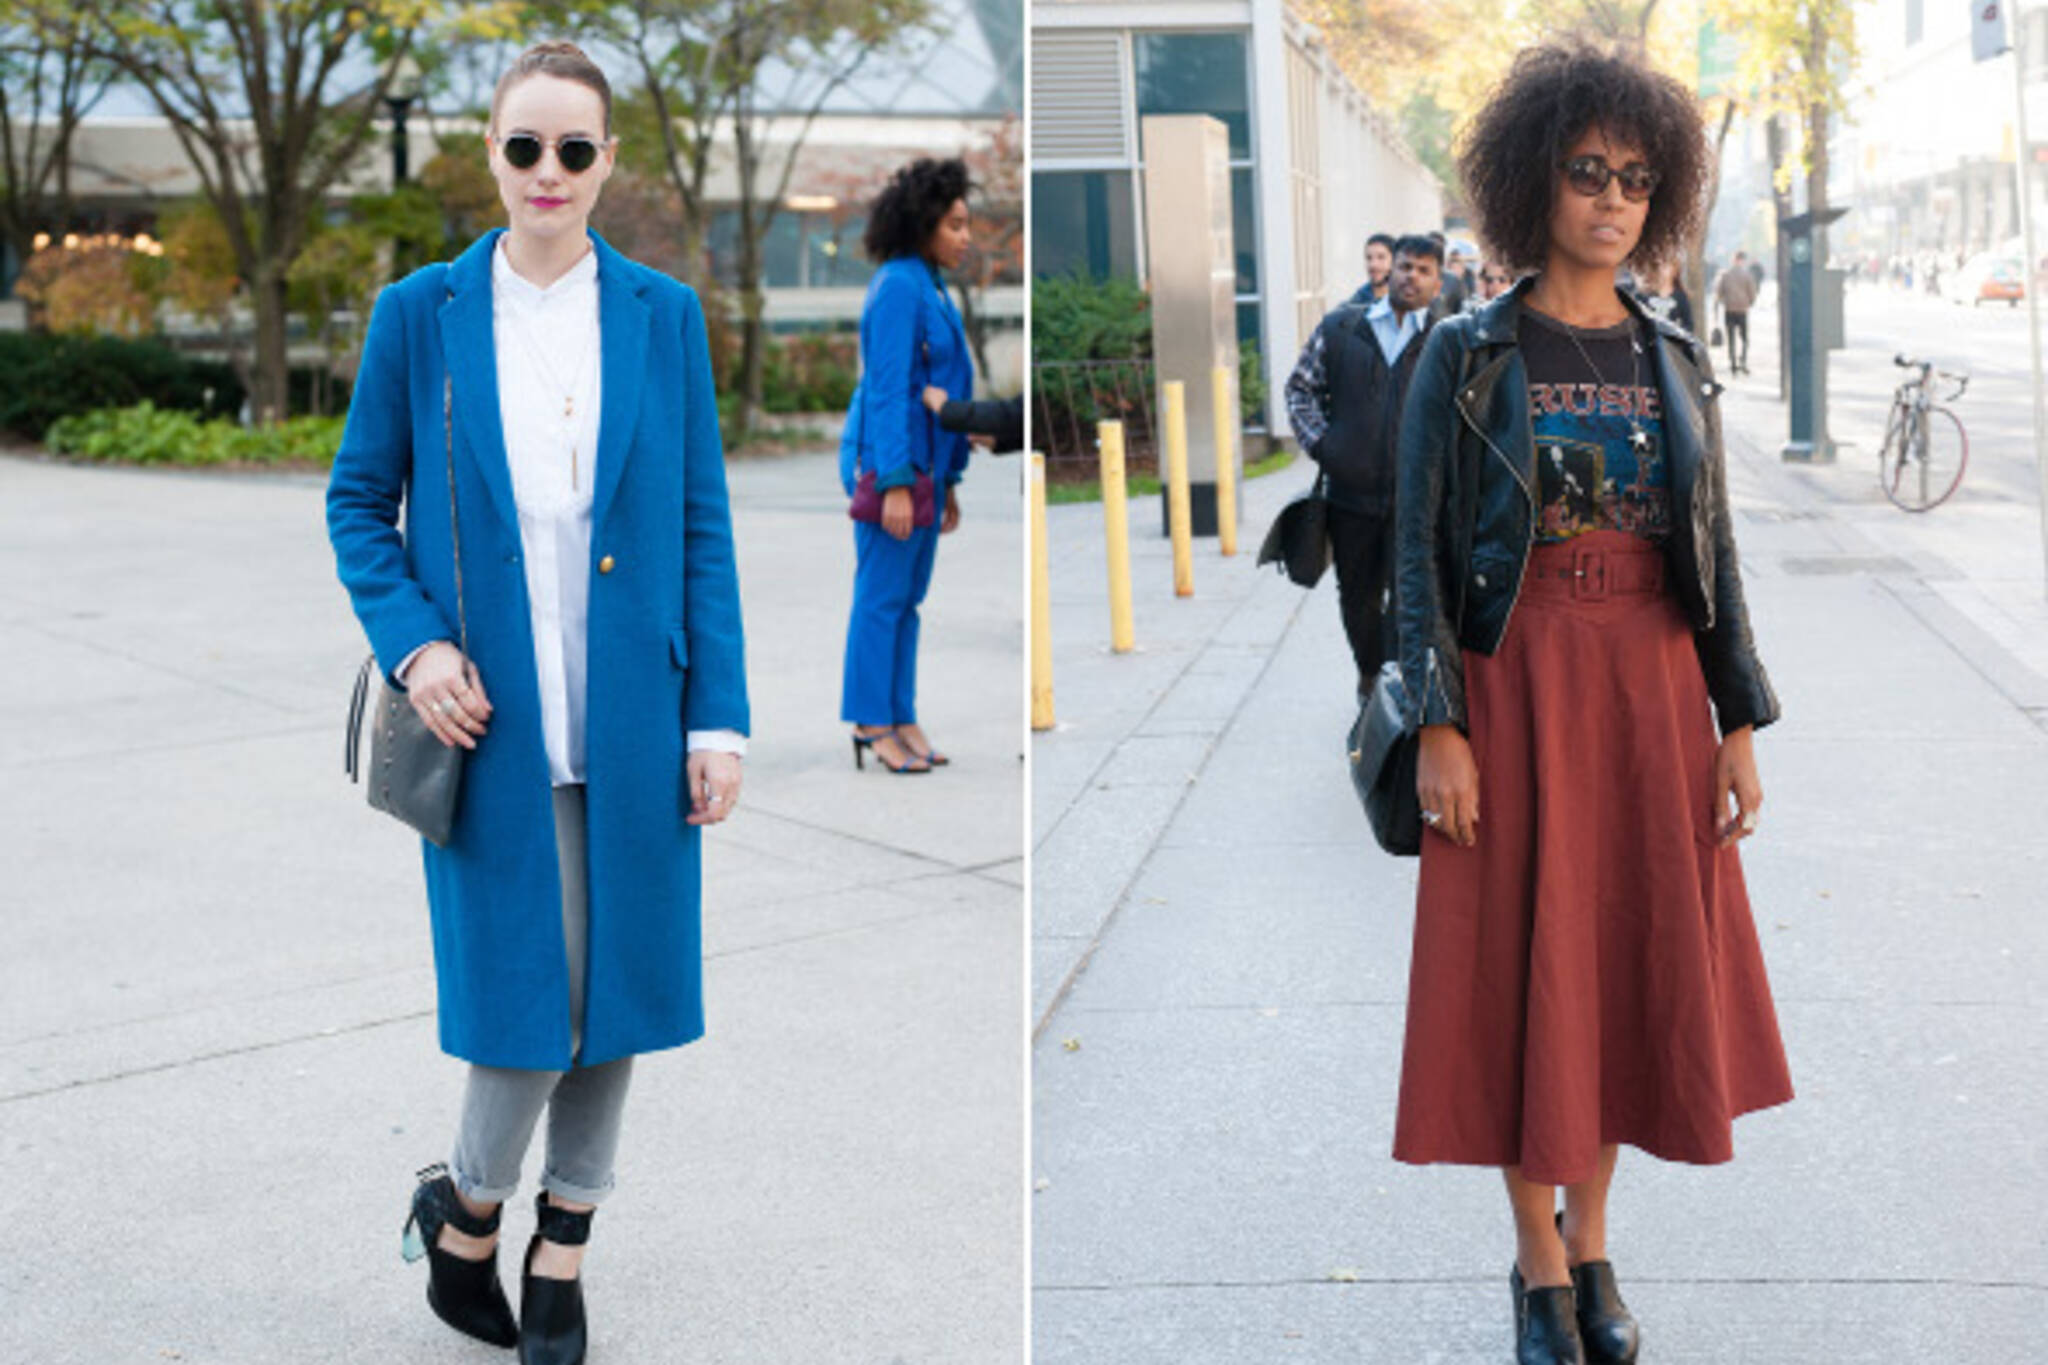 toronto fashion week street style